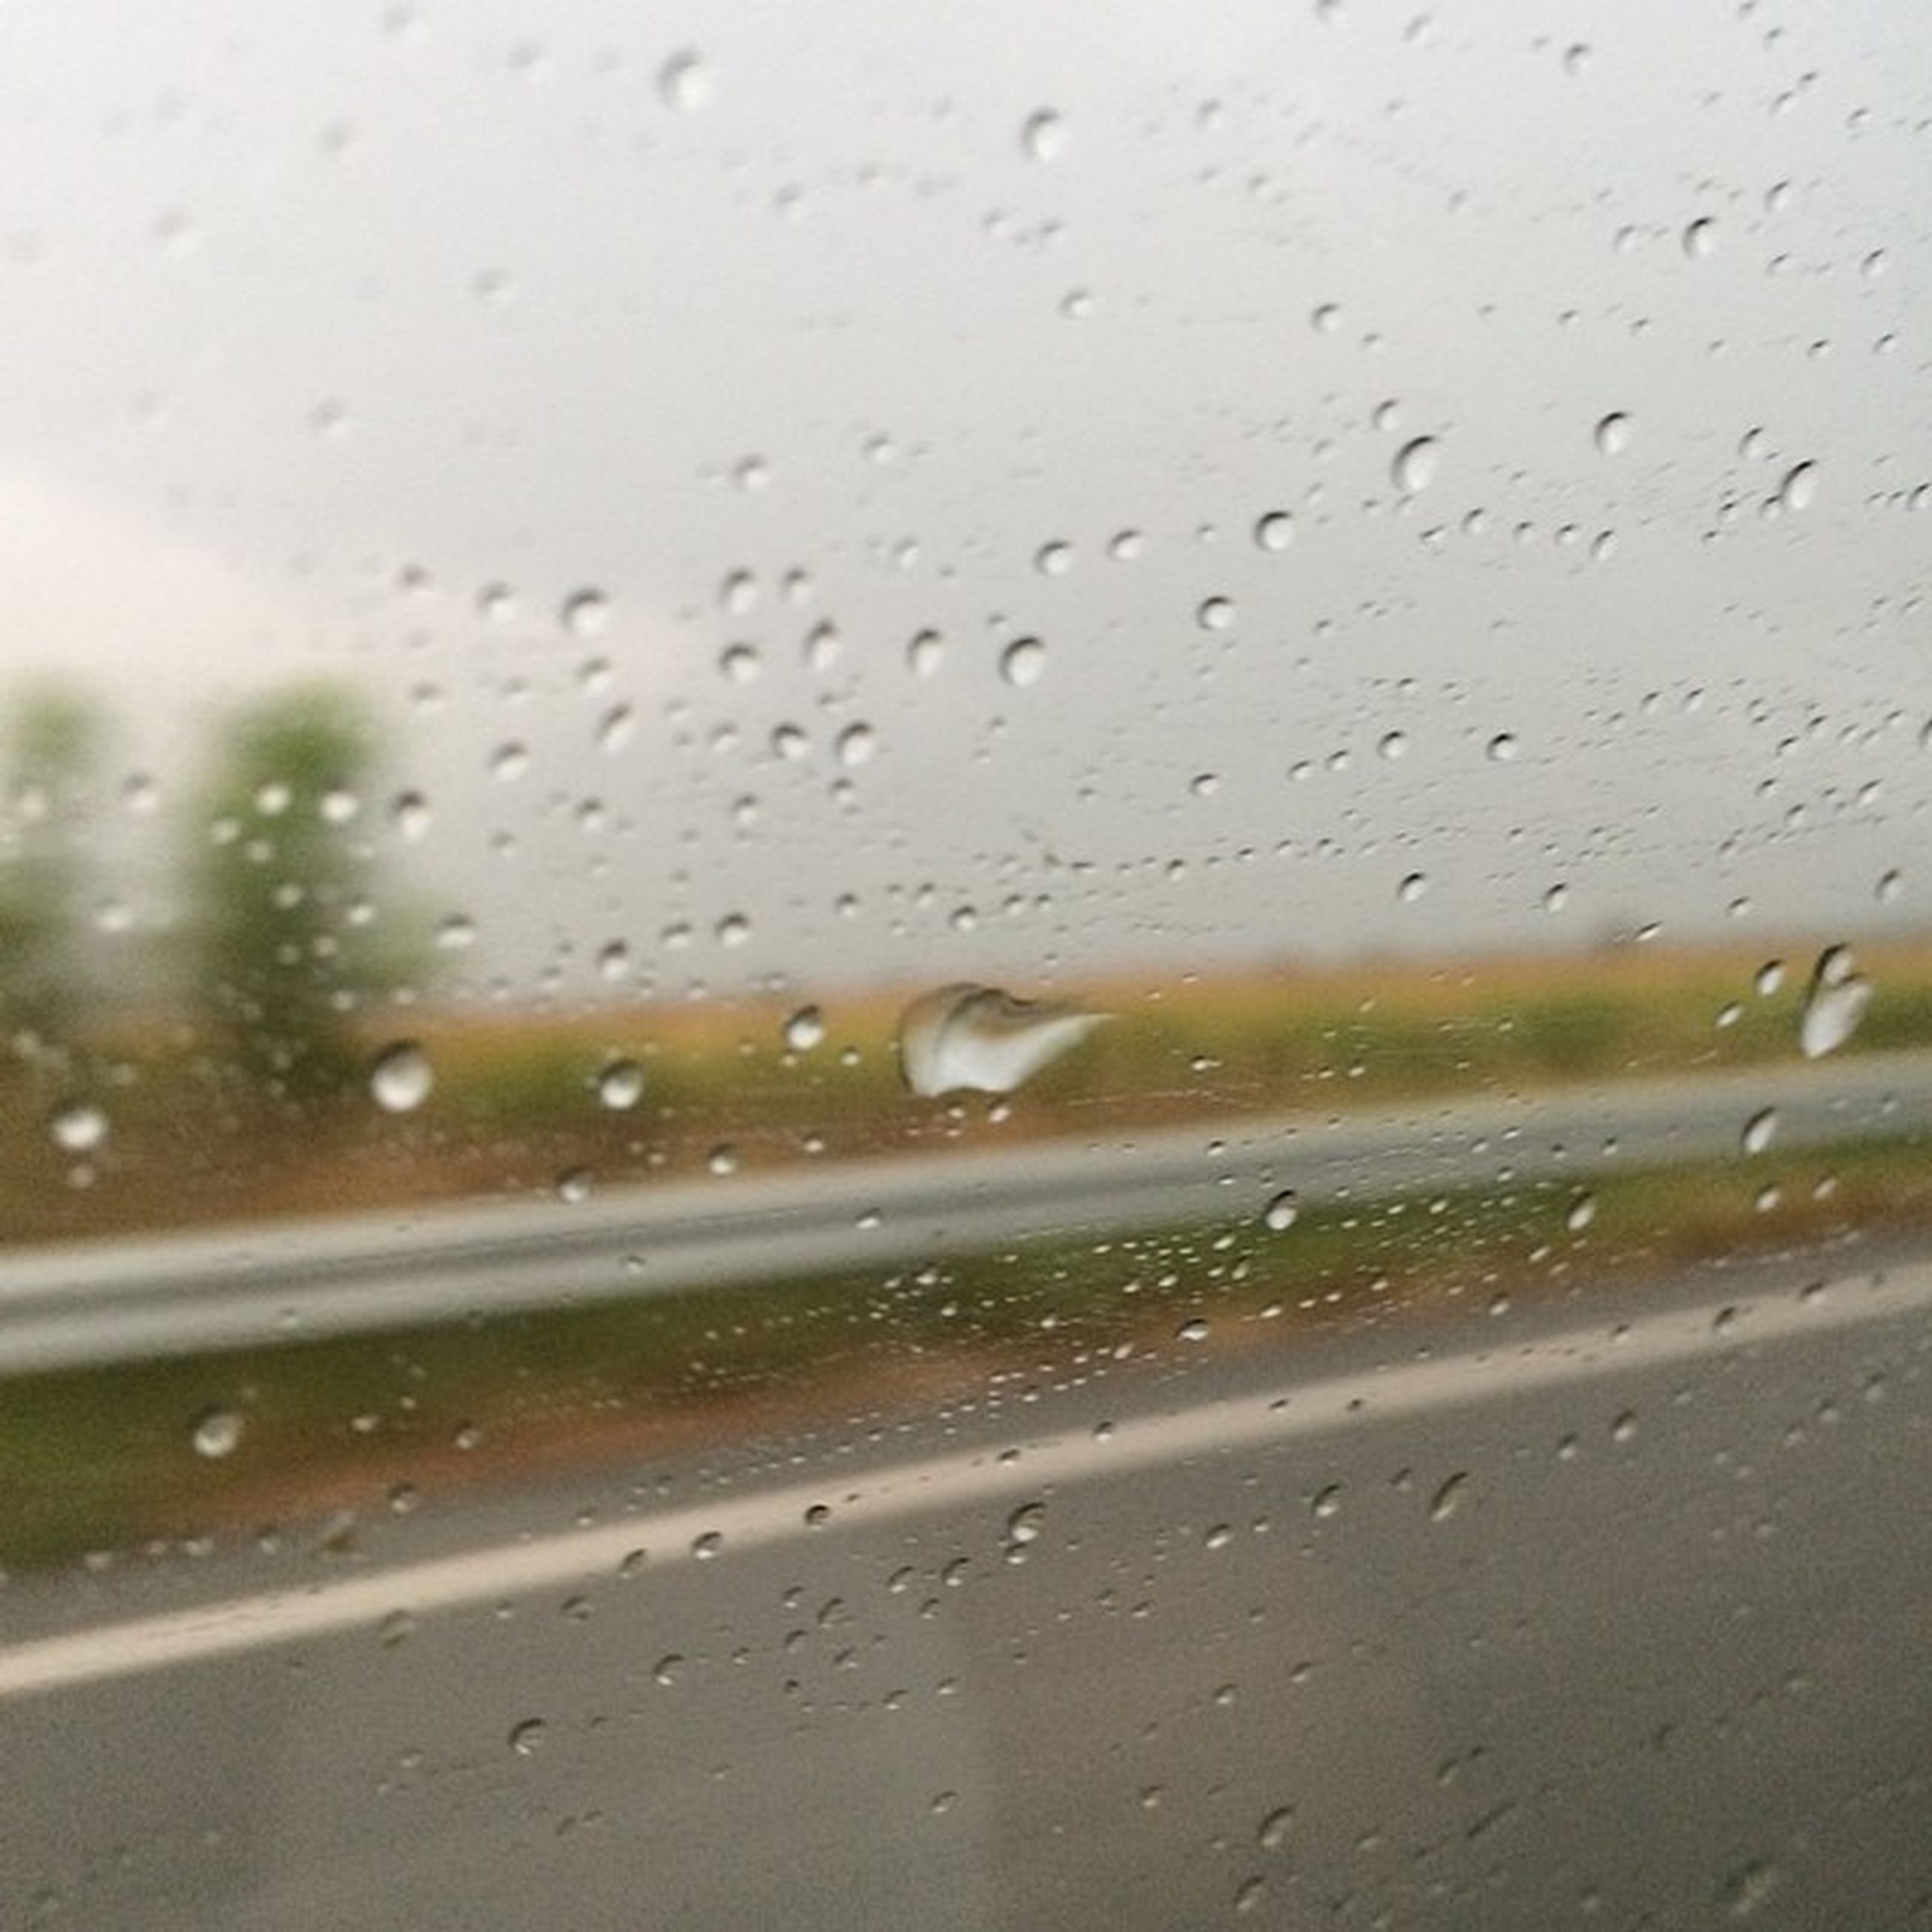 drop, wet, window, transparent, glass - material, rain, water, transportation, raindrop, vehicle interior, weather, car, indoors, mode of transport, season, land vehicle, glass, car interior, windshield, sky